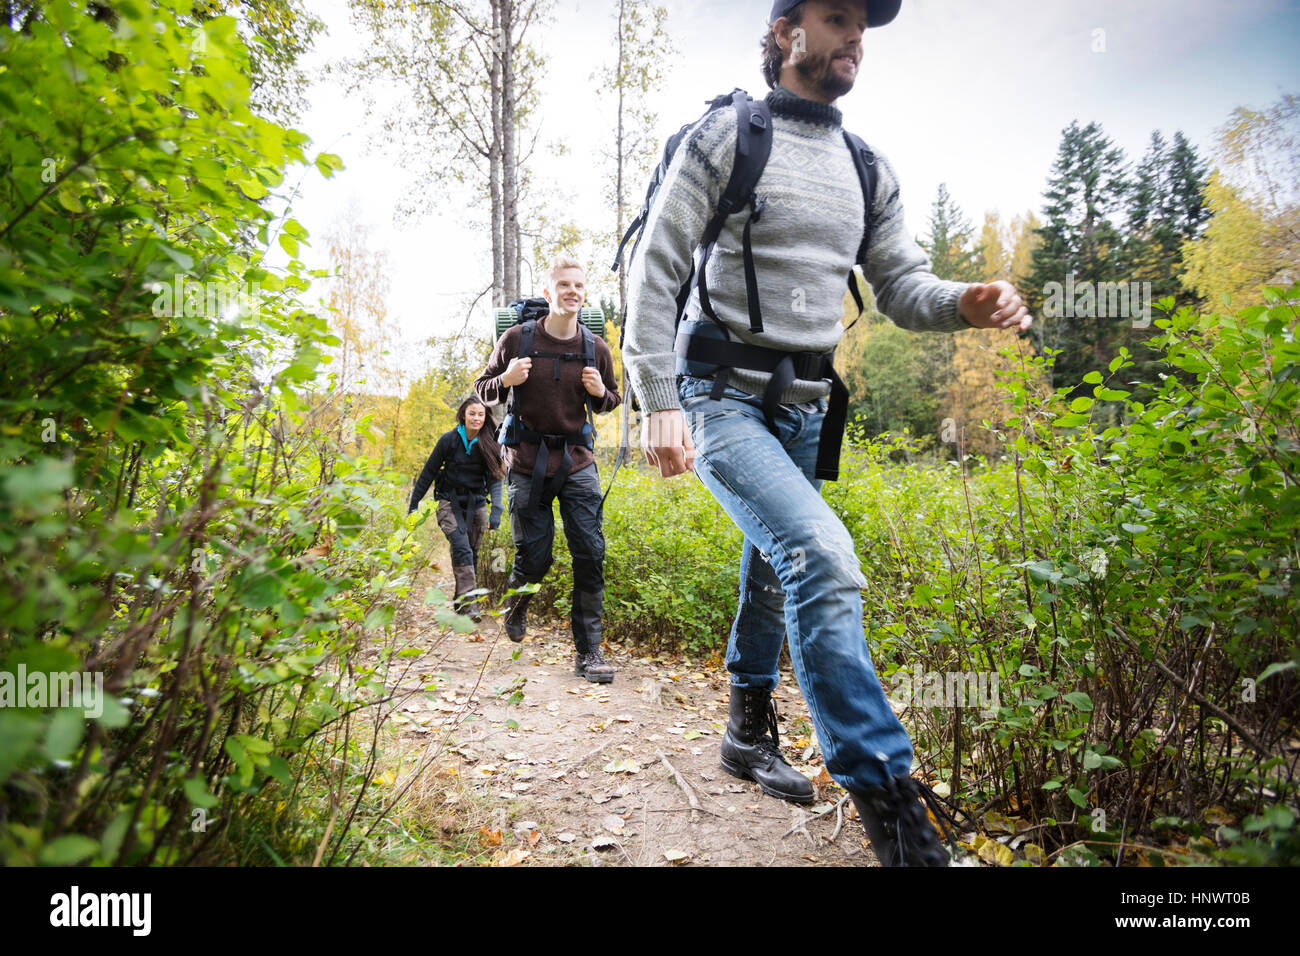 Young Man With Friends Hiking On Forest Trail - Stock Image